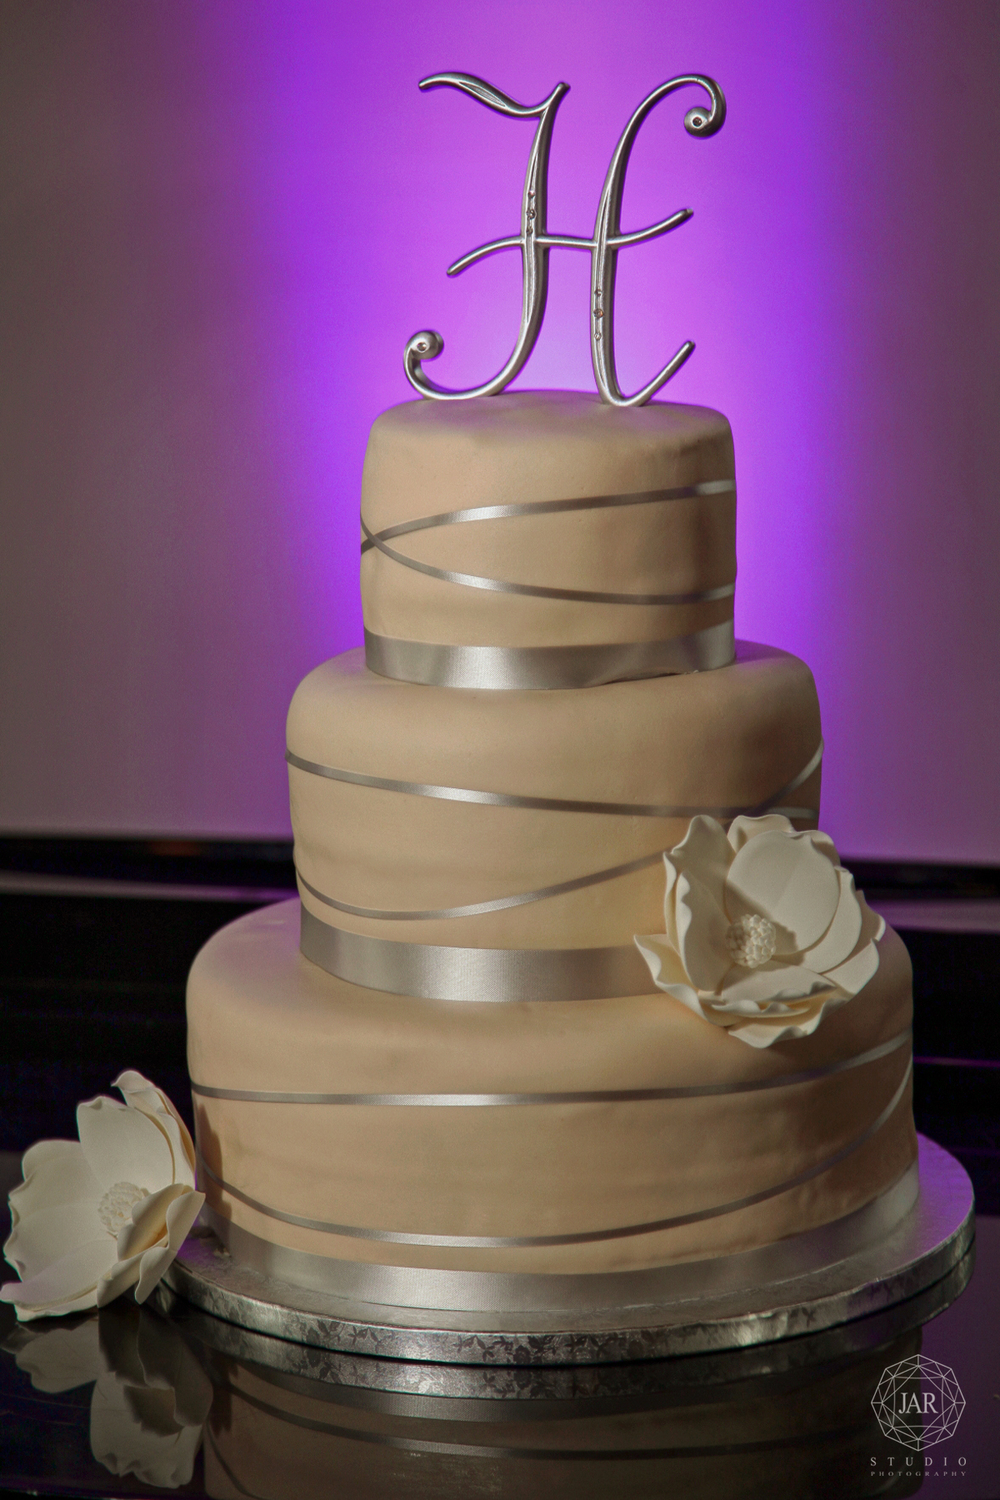 27-beautiful-wedding-cake-jarstudio-photography.JPG